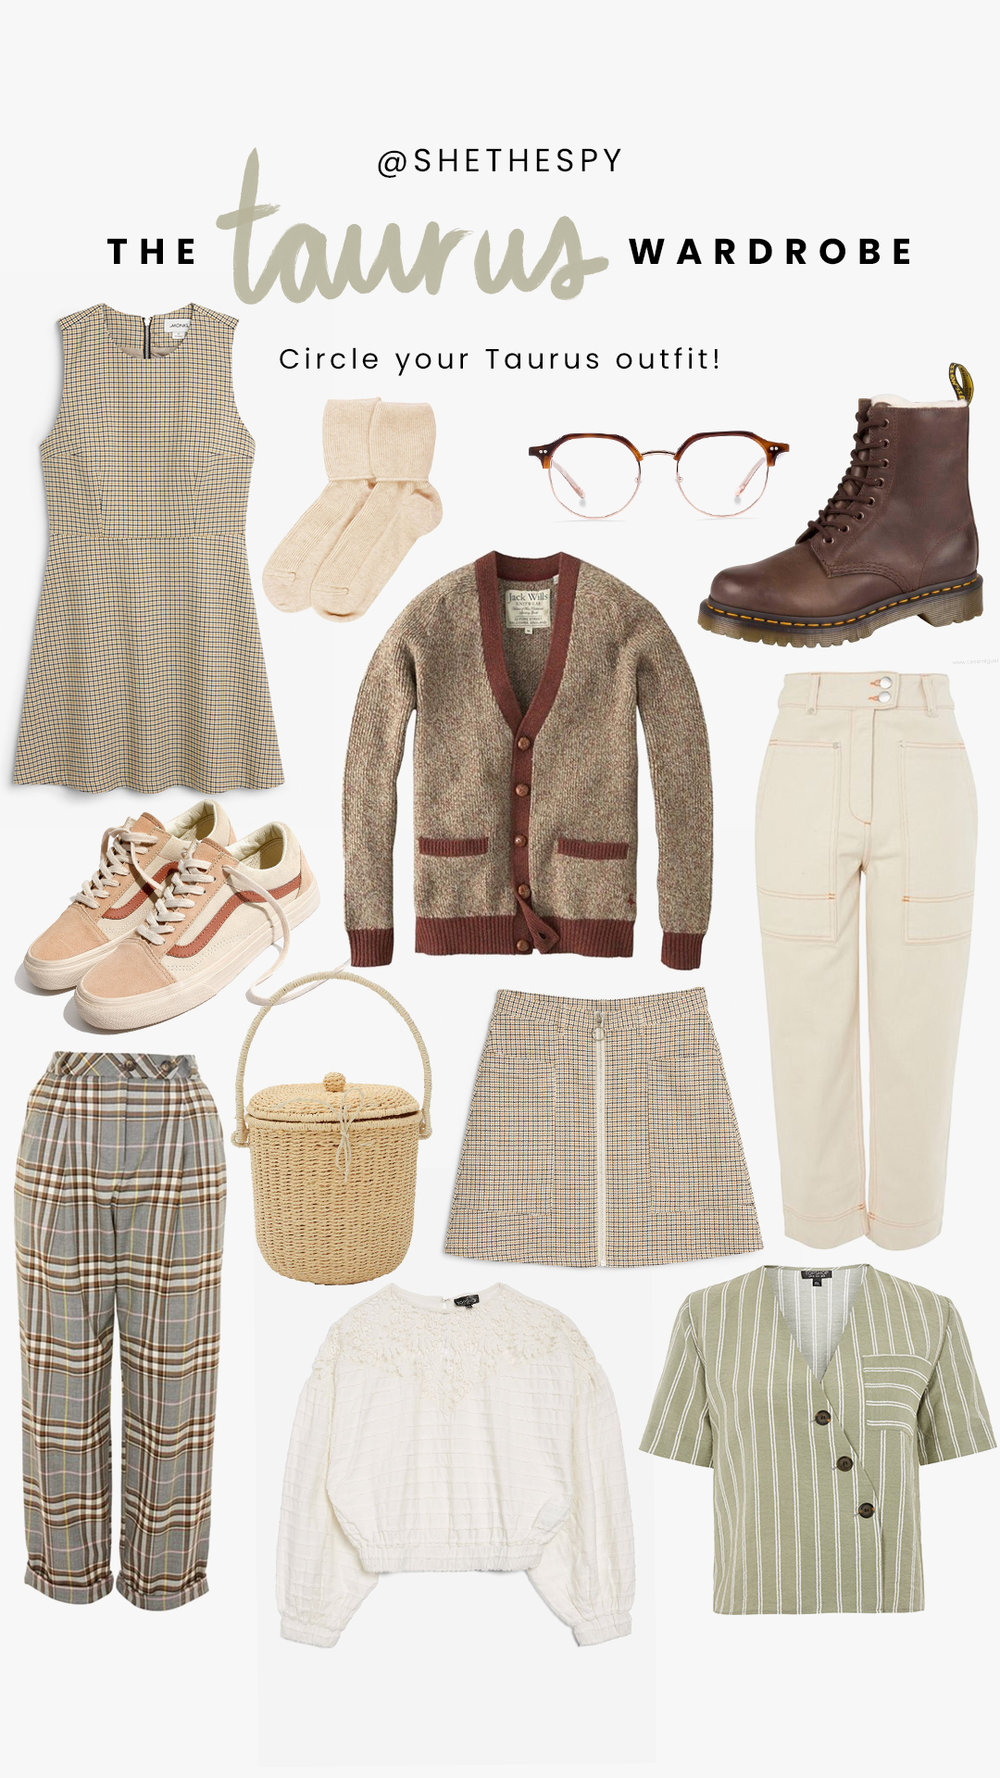 Shop Taurus - Dress: MonkiGlasses: Bailey NelsonSocks: UnknownBoots: Dr MartensSneakers: Madewell x VansCardigan: UnknownJeans: TopshopSkirt: MonkiTrousers: TopshopBag: Poppy & CoWhite blouse: TopshopGreen top: Topshop